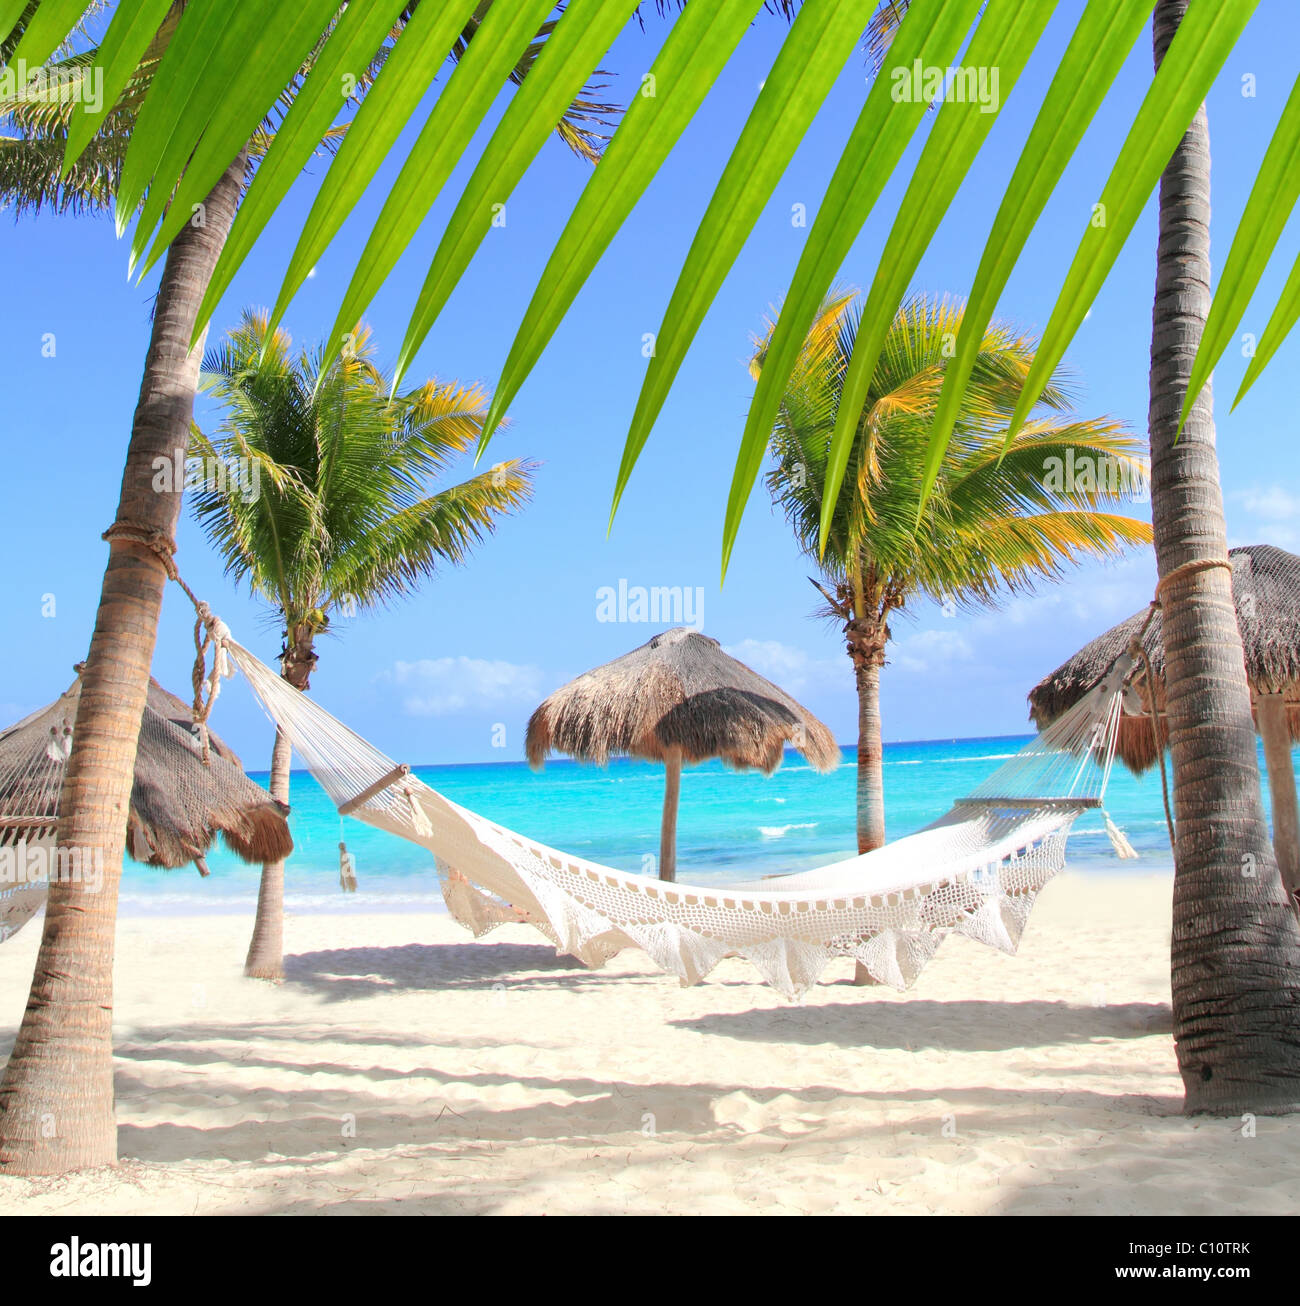 Caribbean beach hammock and palm trees in Mayan Riviera Mexico - Stock Image